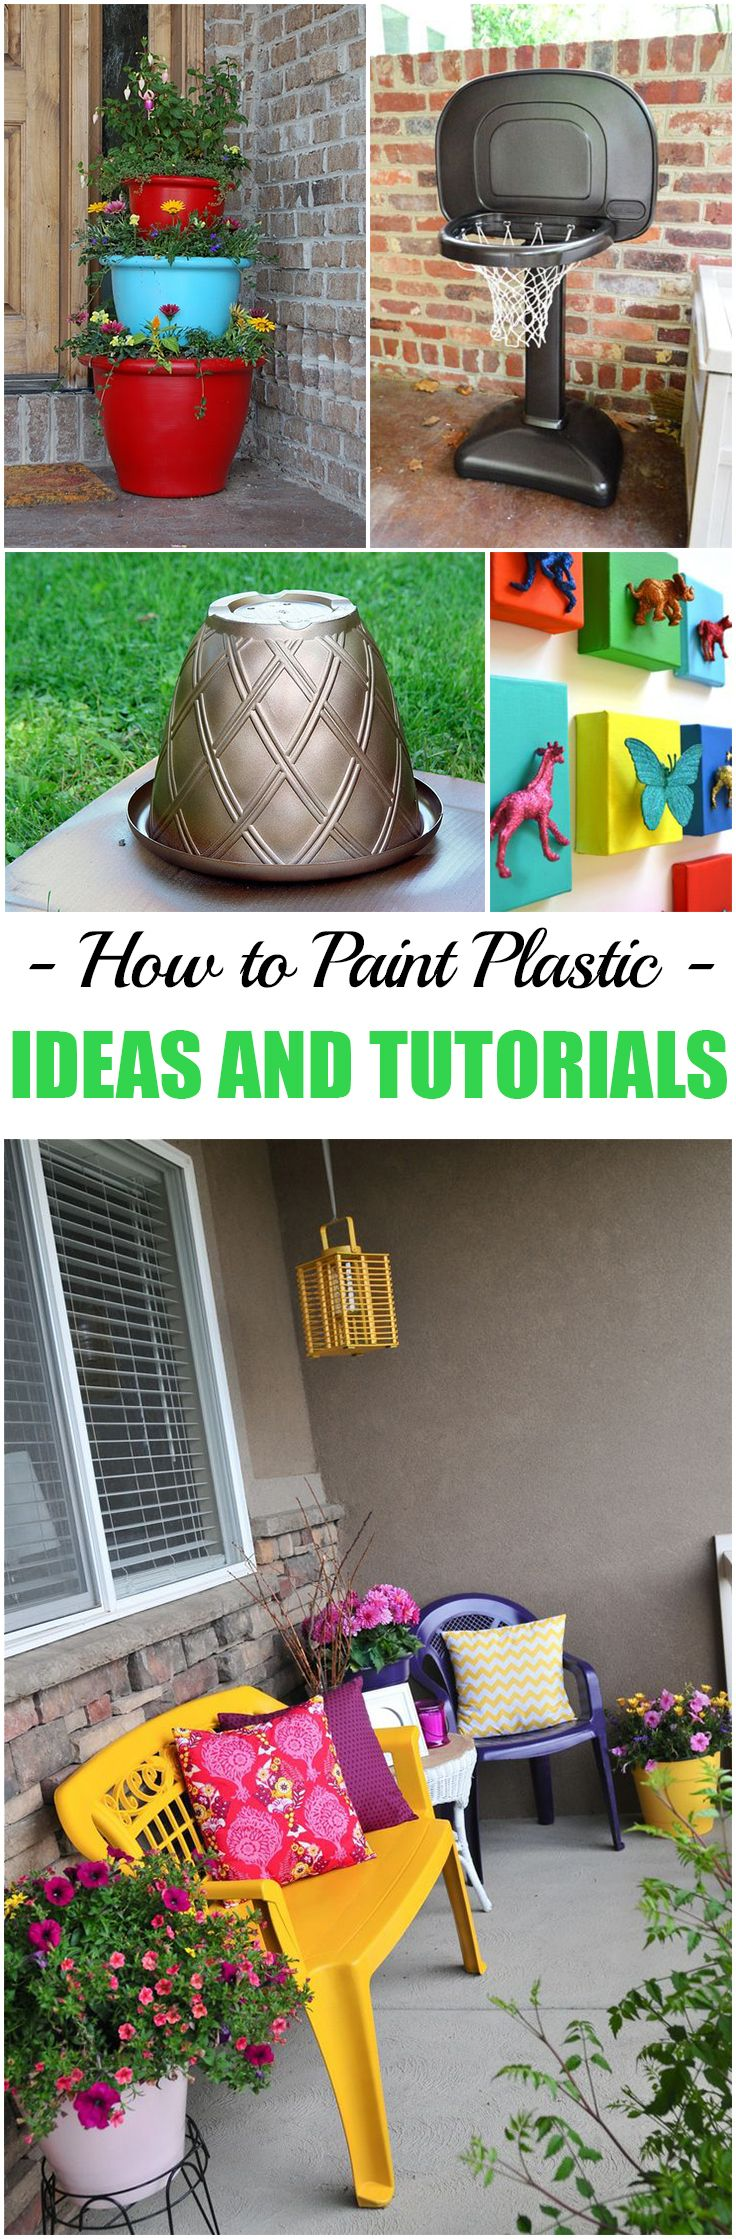 How to Paint Plastic - Ideas and Tutorials-Once you figure out how to paint…